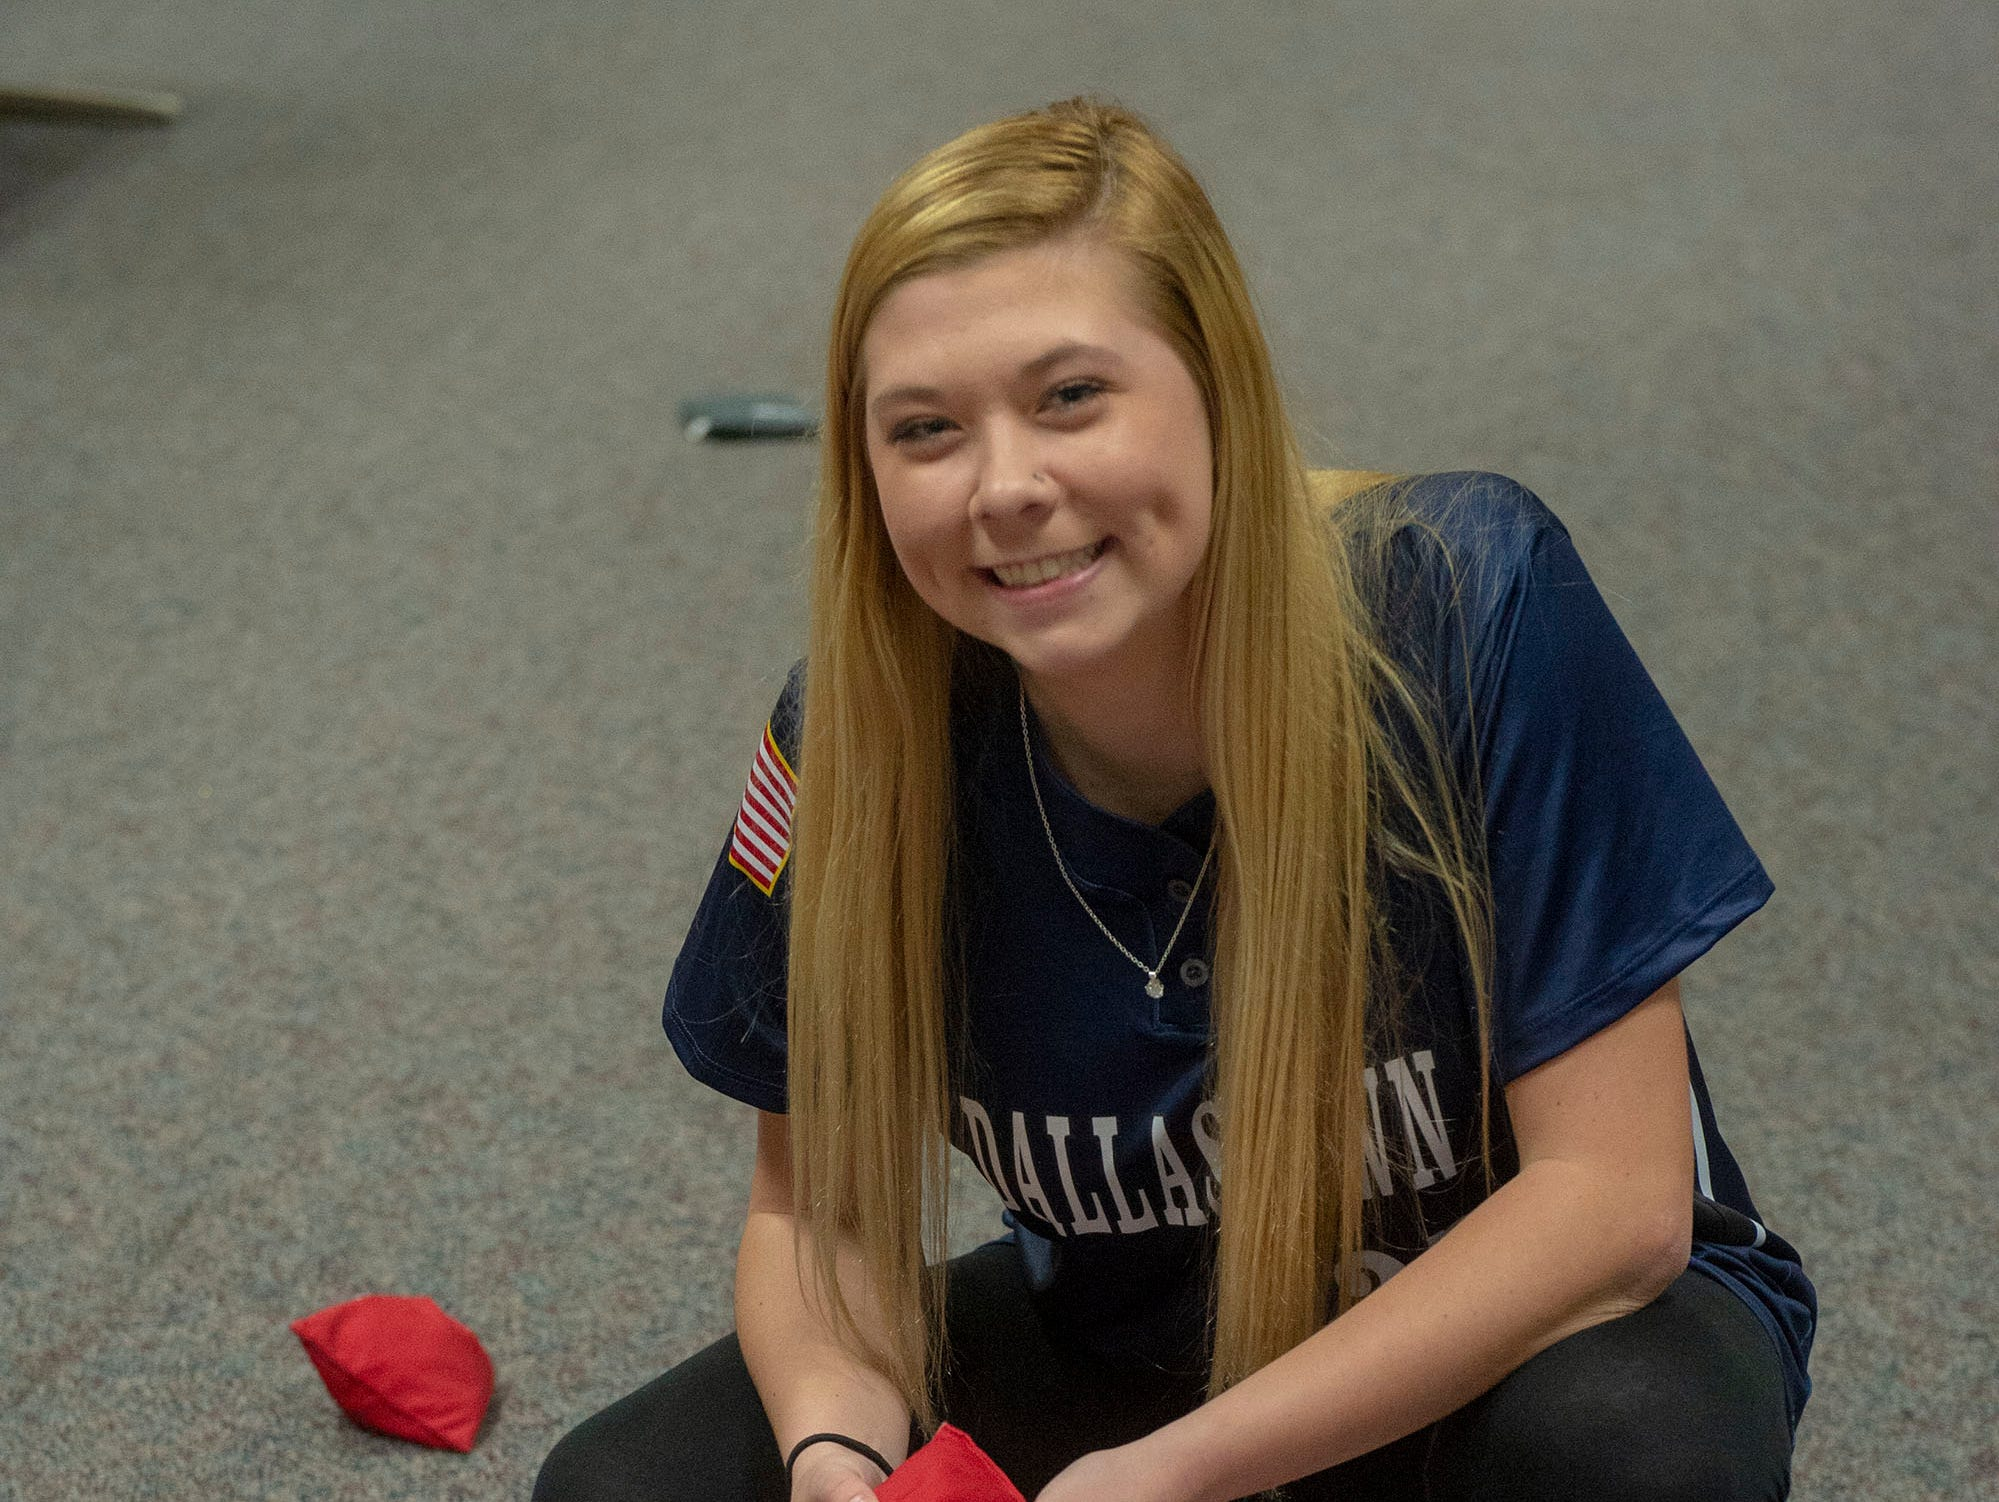 Dallastown softball pitcher Kelsie Merriman was the champ of long-distance cornhole Sunday, March 10, 2019 at GameTimePA's Spring Media Day. She was one of three players to send the beanbag home, but the only person to do it twice. Spring Grove's Bailey Rampson and Bermudian Springs' Tyler Reinert also scored winners.